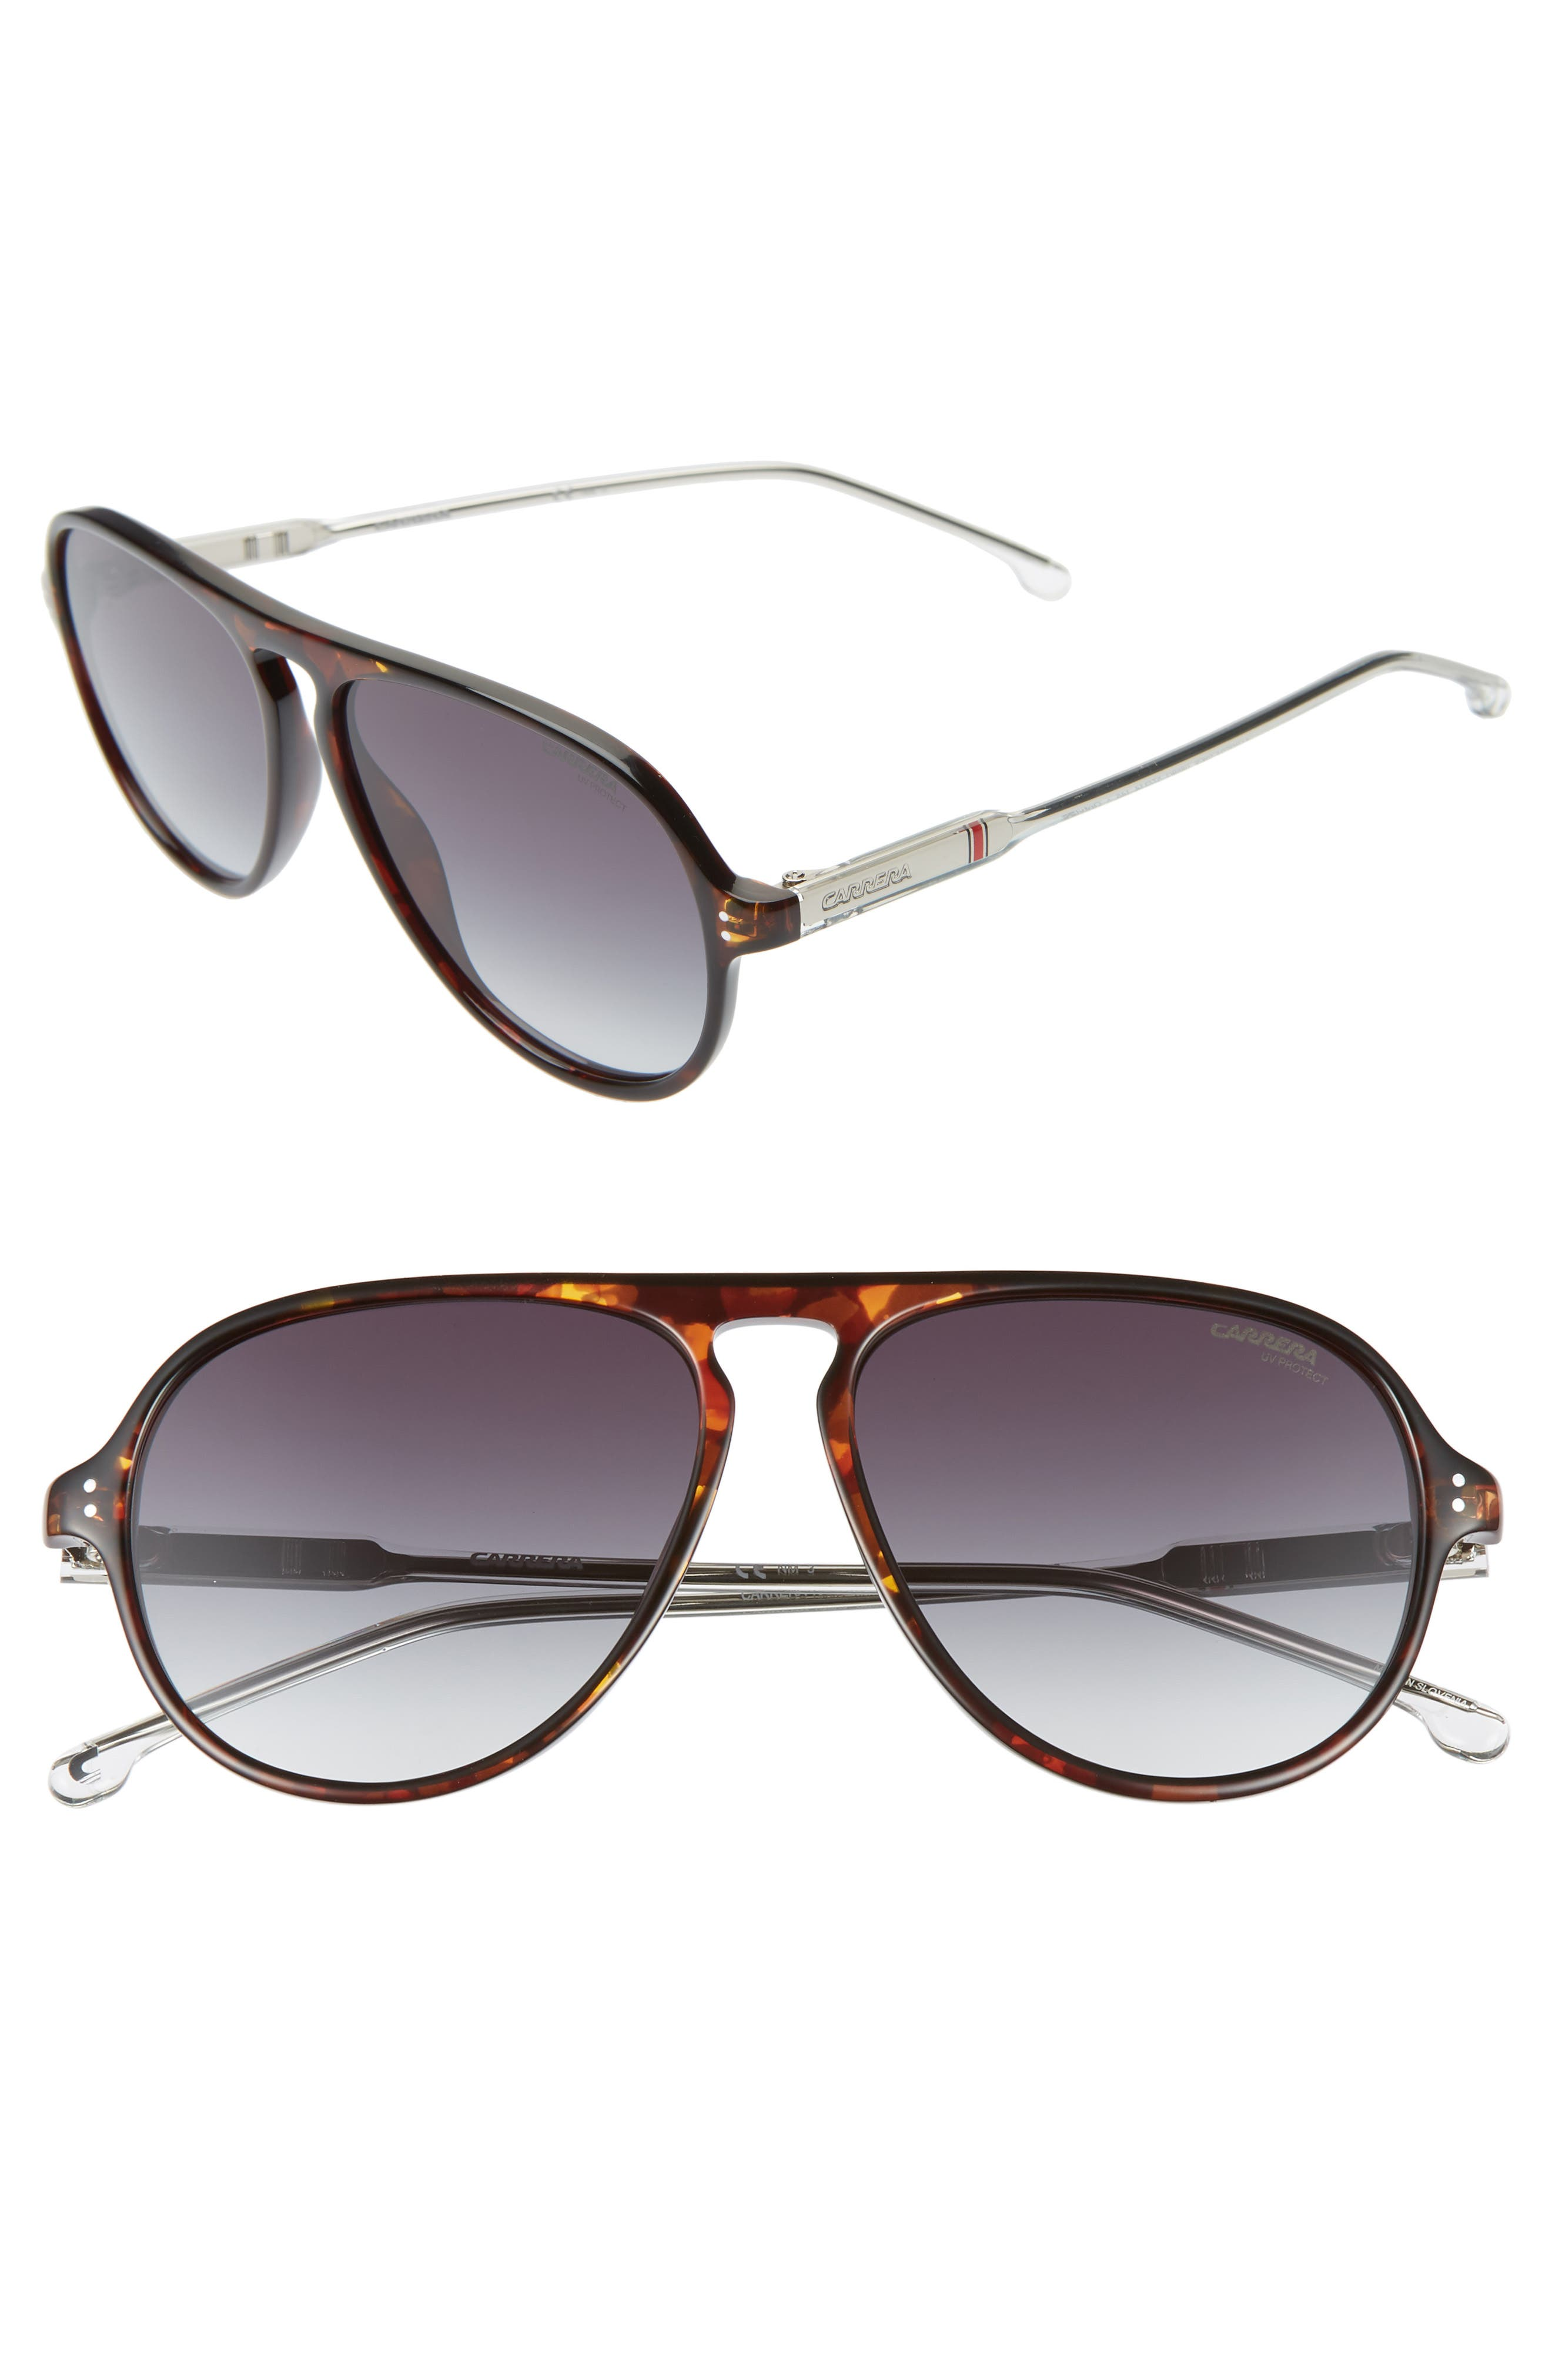 Carrera Eyewear 57Mm Aviator Sunglasses - Dark Havana